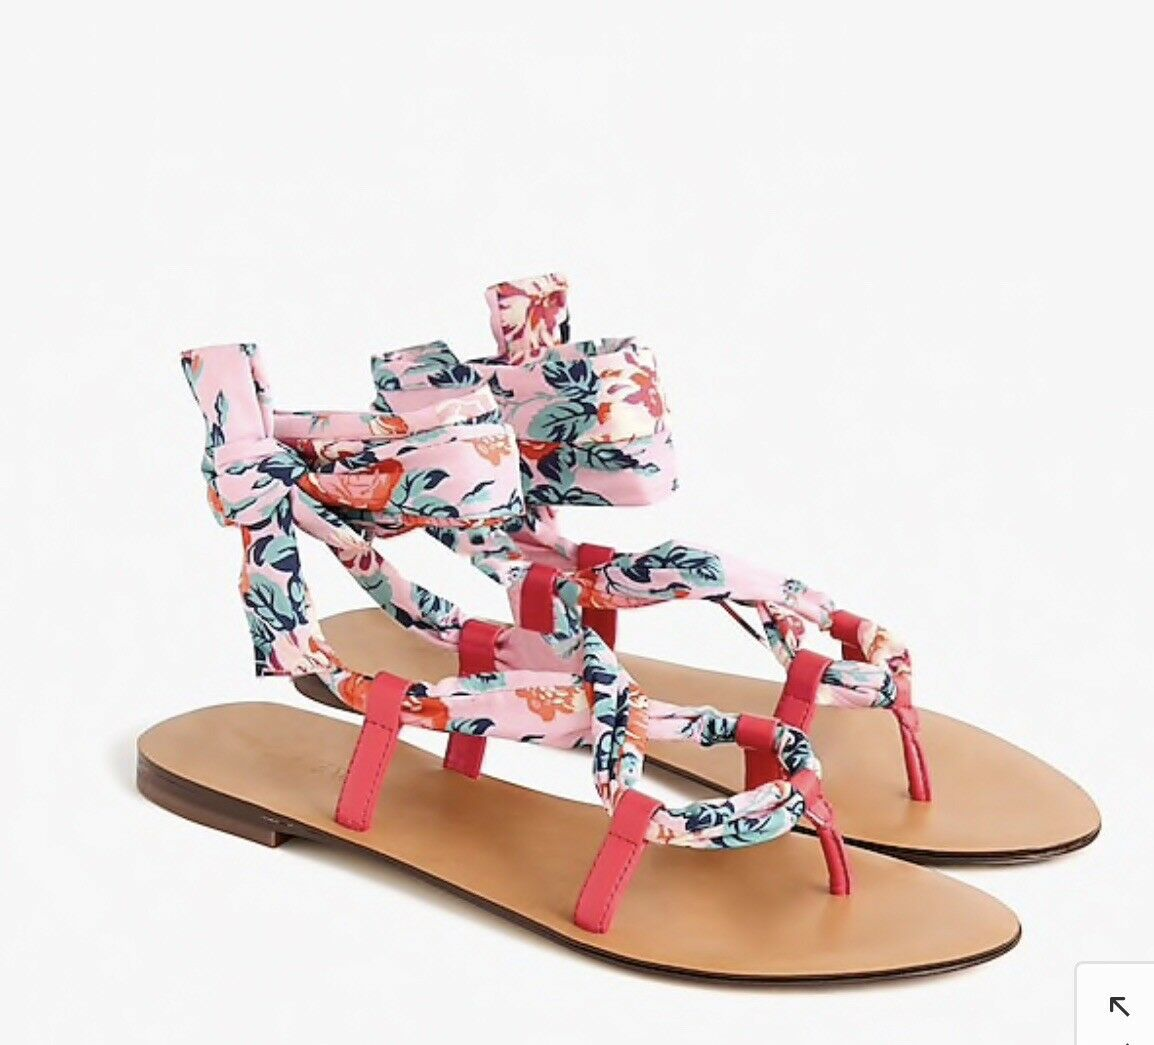 J.Crew Wrap-around sandals in Liberty® floral  98, size 8.5, NEW, sold out